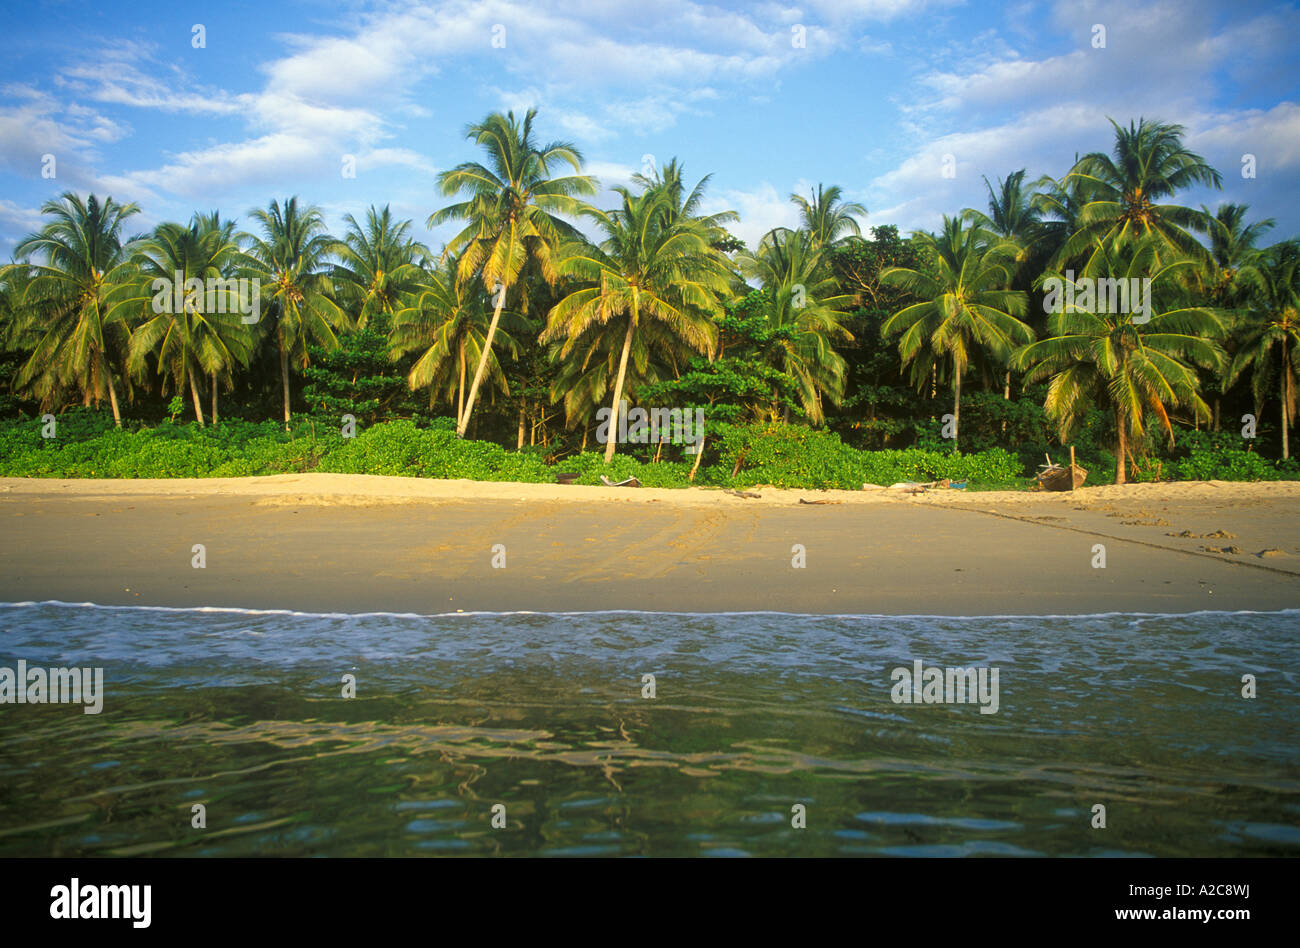 coco palms at a beach on the island Ko Lanta in Thailand - Stock Image